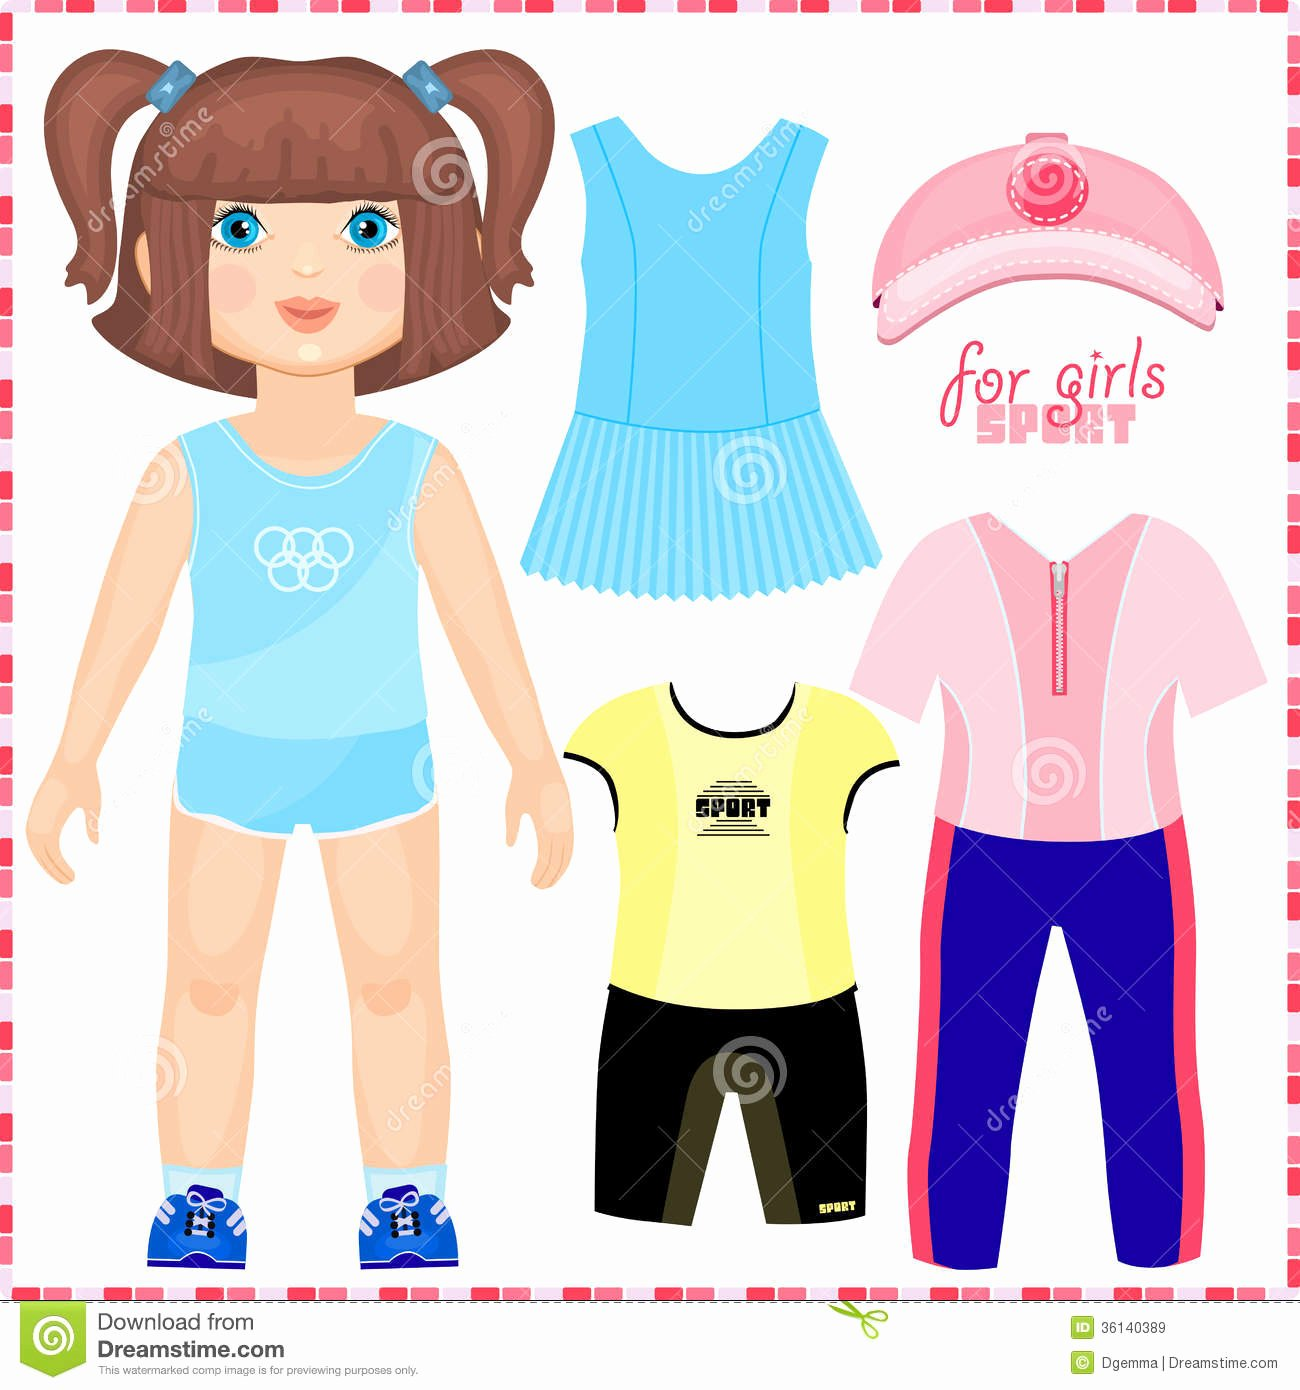 Paper Doll Clothing Template Best Of Best S Of Paper Doll Clothes for Girls Paper Dolls